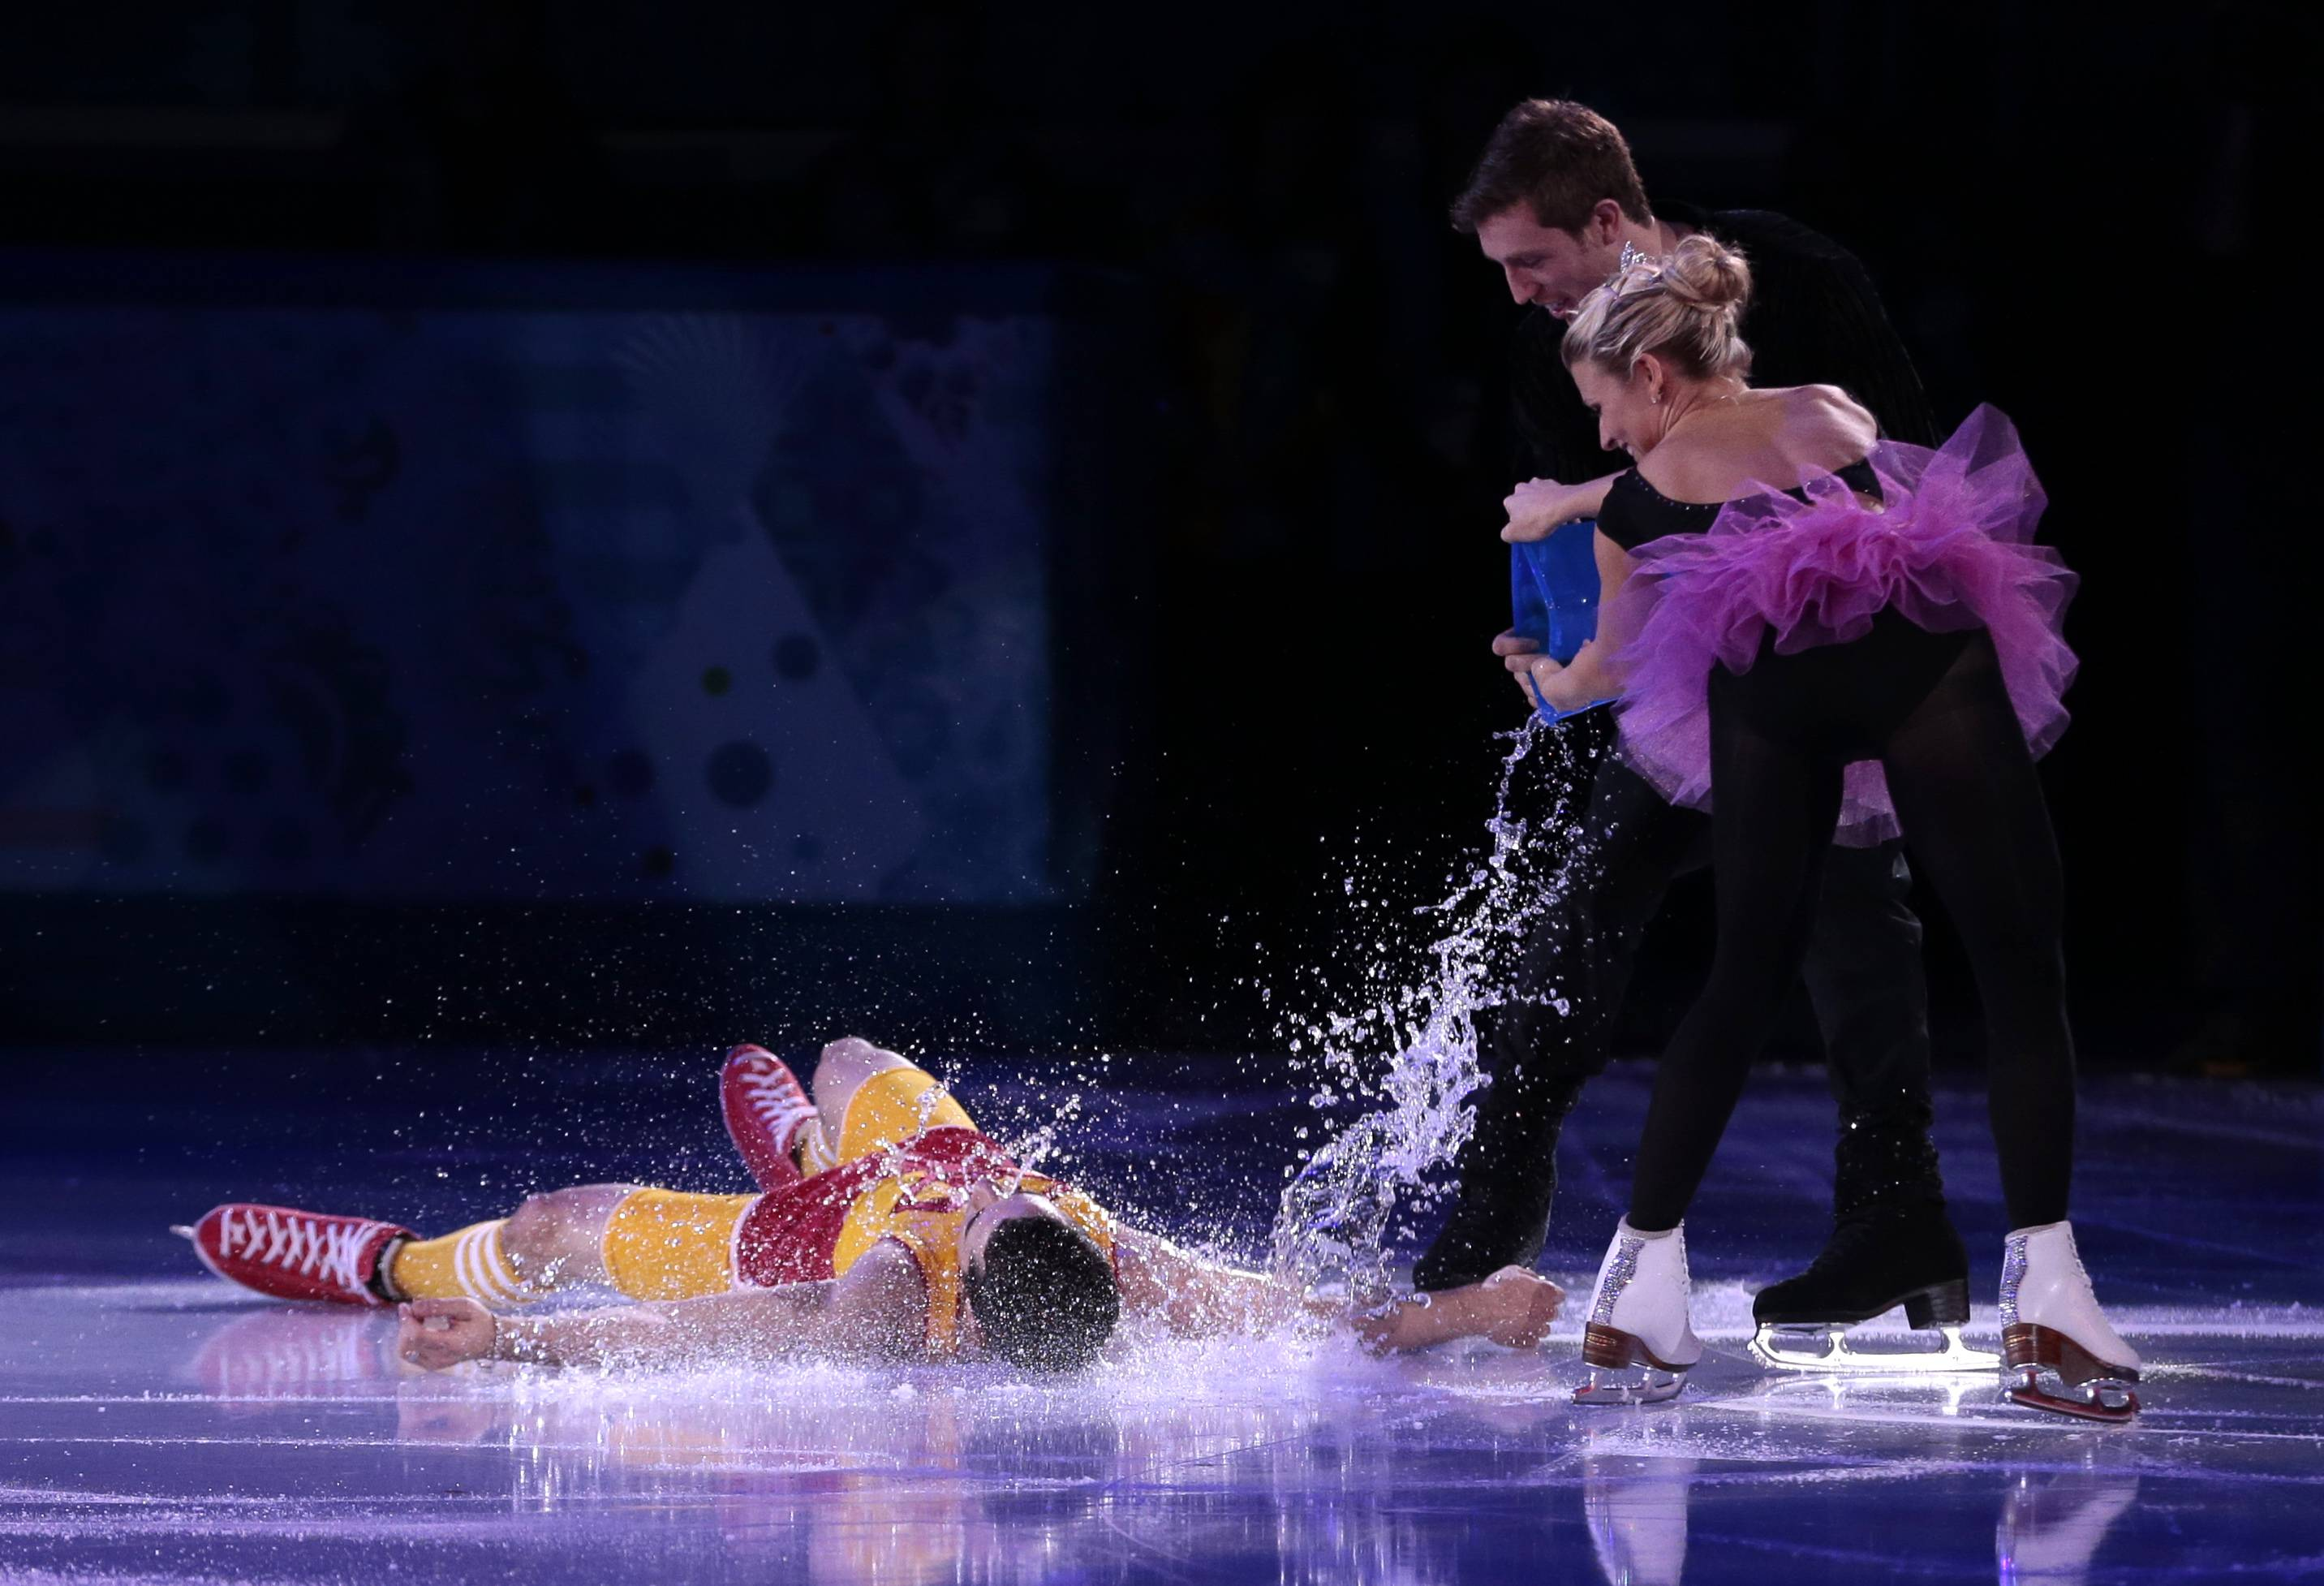 Javier Fernandez of Spain, left, has water poured over him by Kirsten Moore-Towers and Dylan Moscovitch of Canada as they perform during the figure skating exhibition gala at the Iceberg Skating Palace during the 2014 Winter Olympics, Saturday, Feb. 22, 2014, in Sochi, Russia.